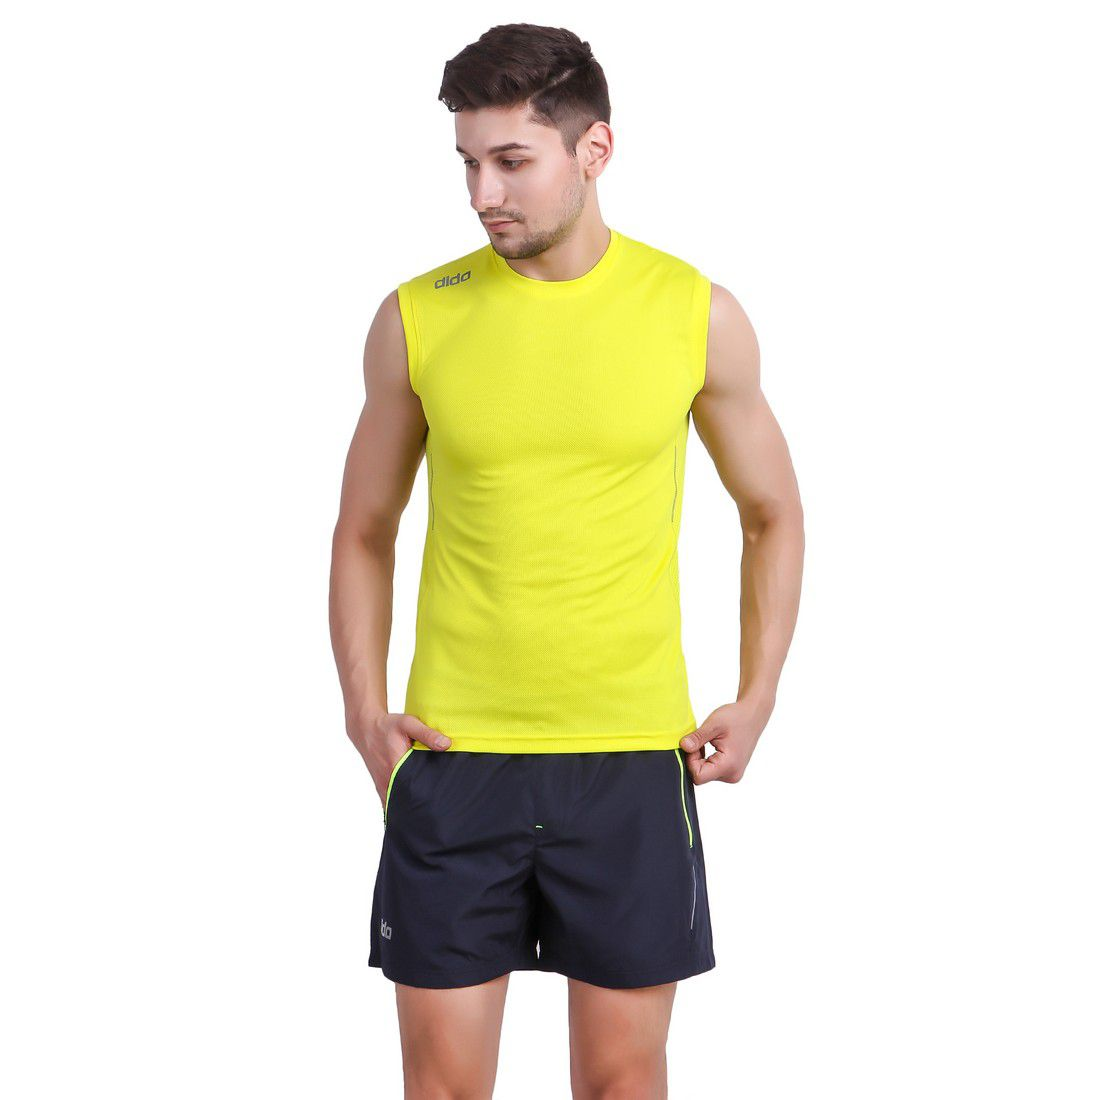 DIDA Yellow Polyester Jersey